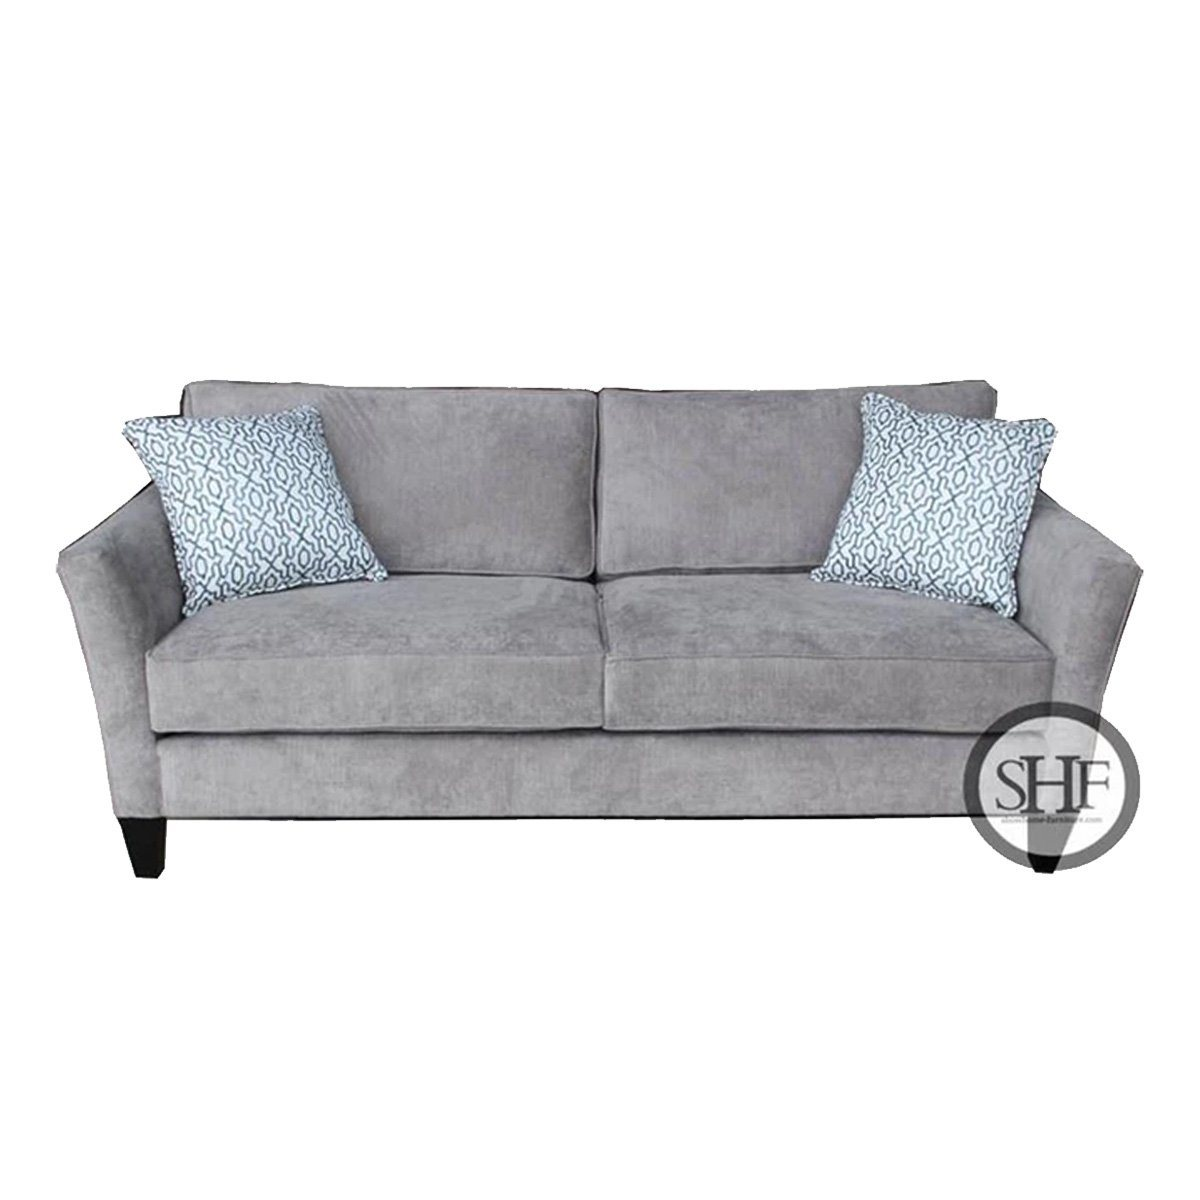 Custom Bruno Sofa - Made in Canada | Showhome Furniture